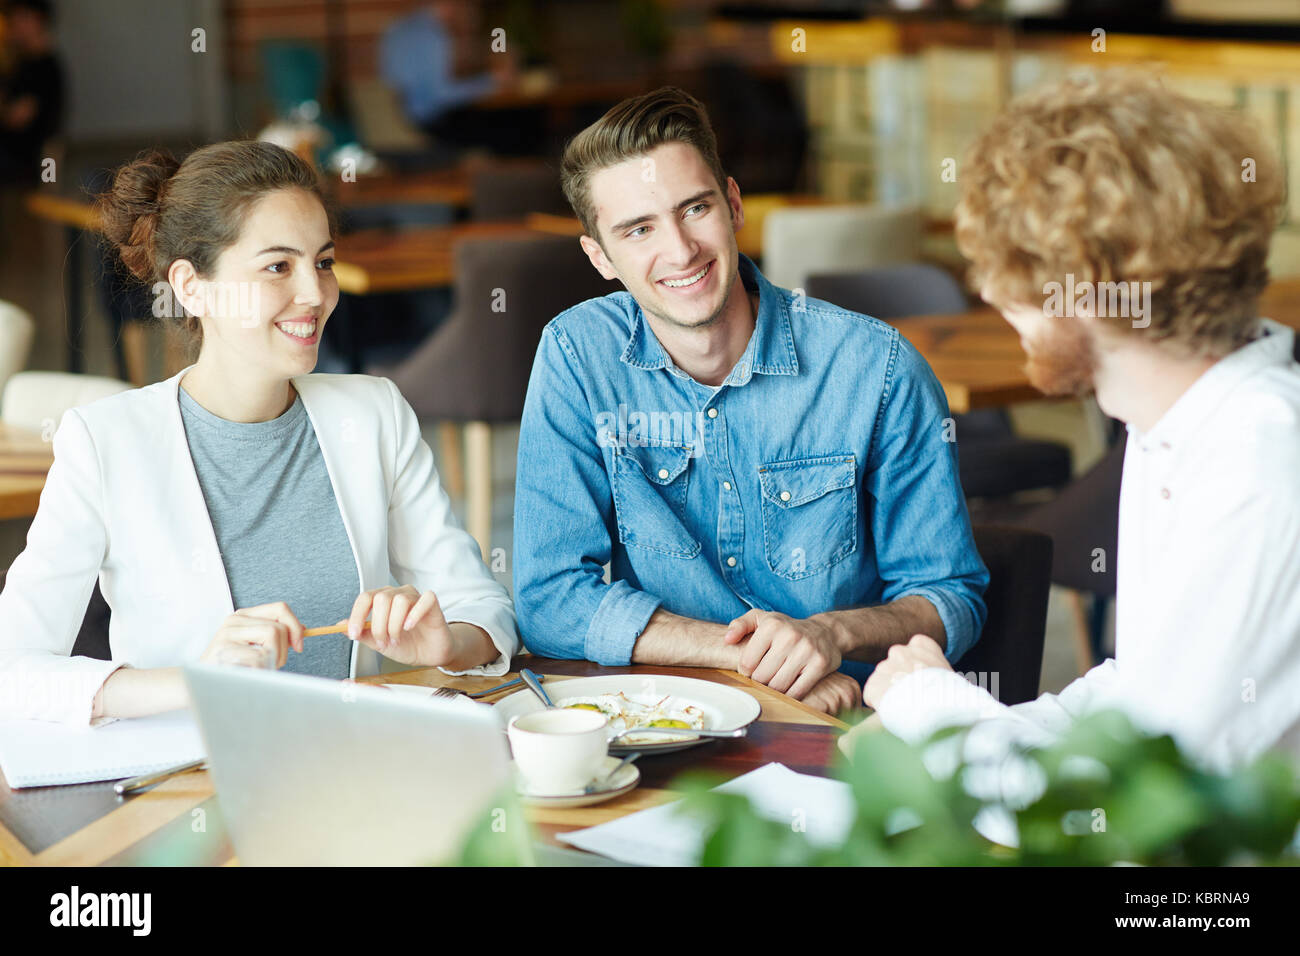 Listening to opinion - Stock Image